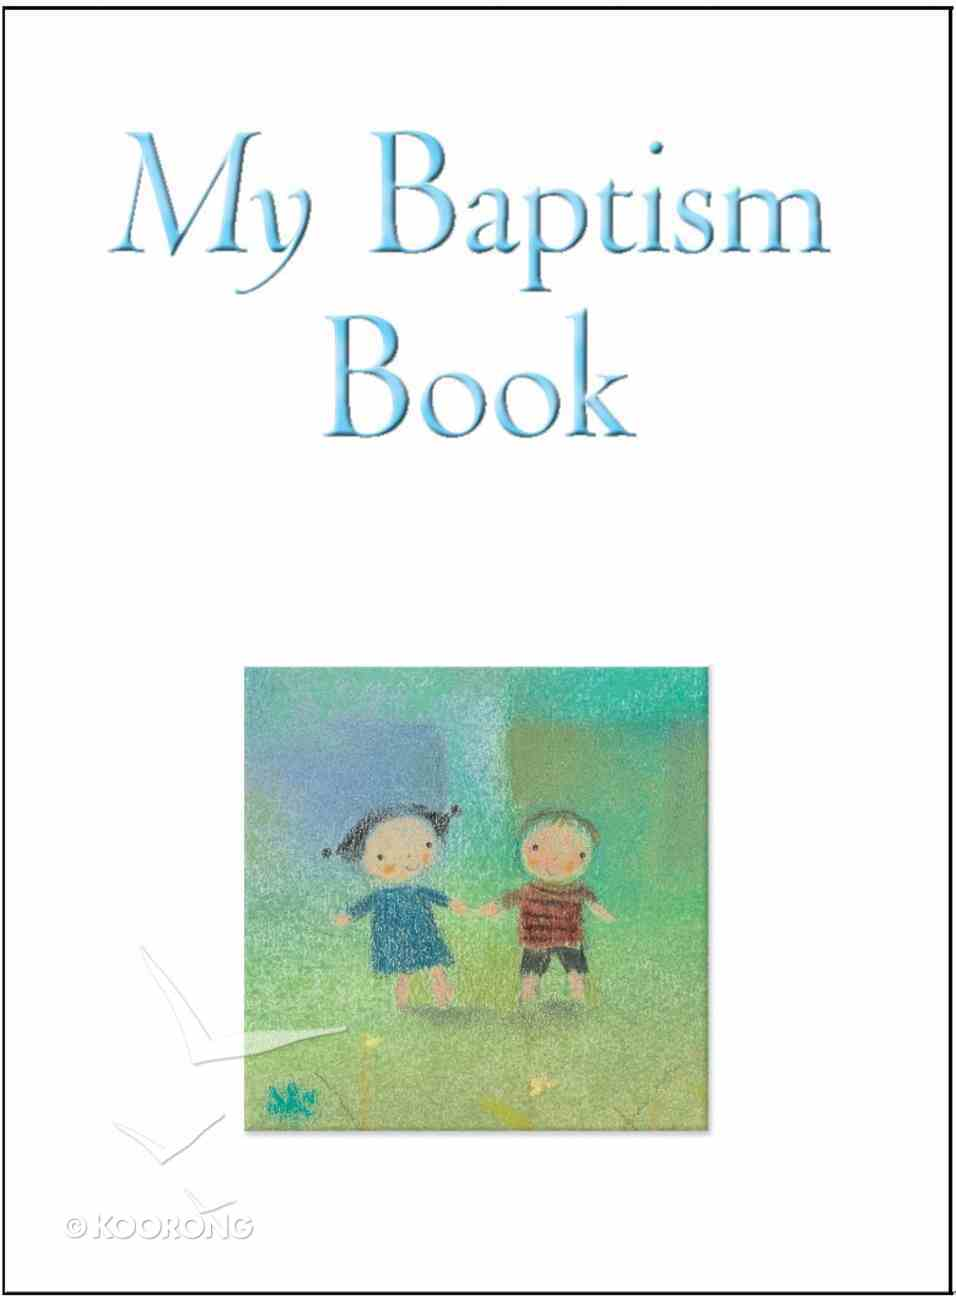 My Baptism Book (Catholic) Hardback